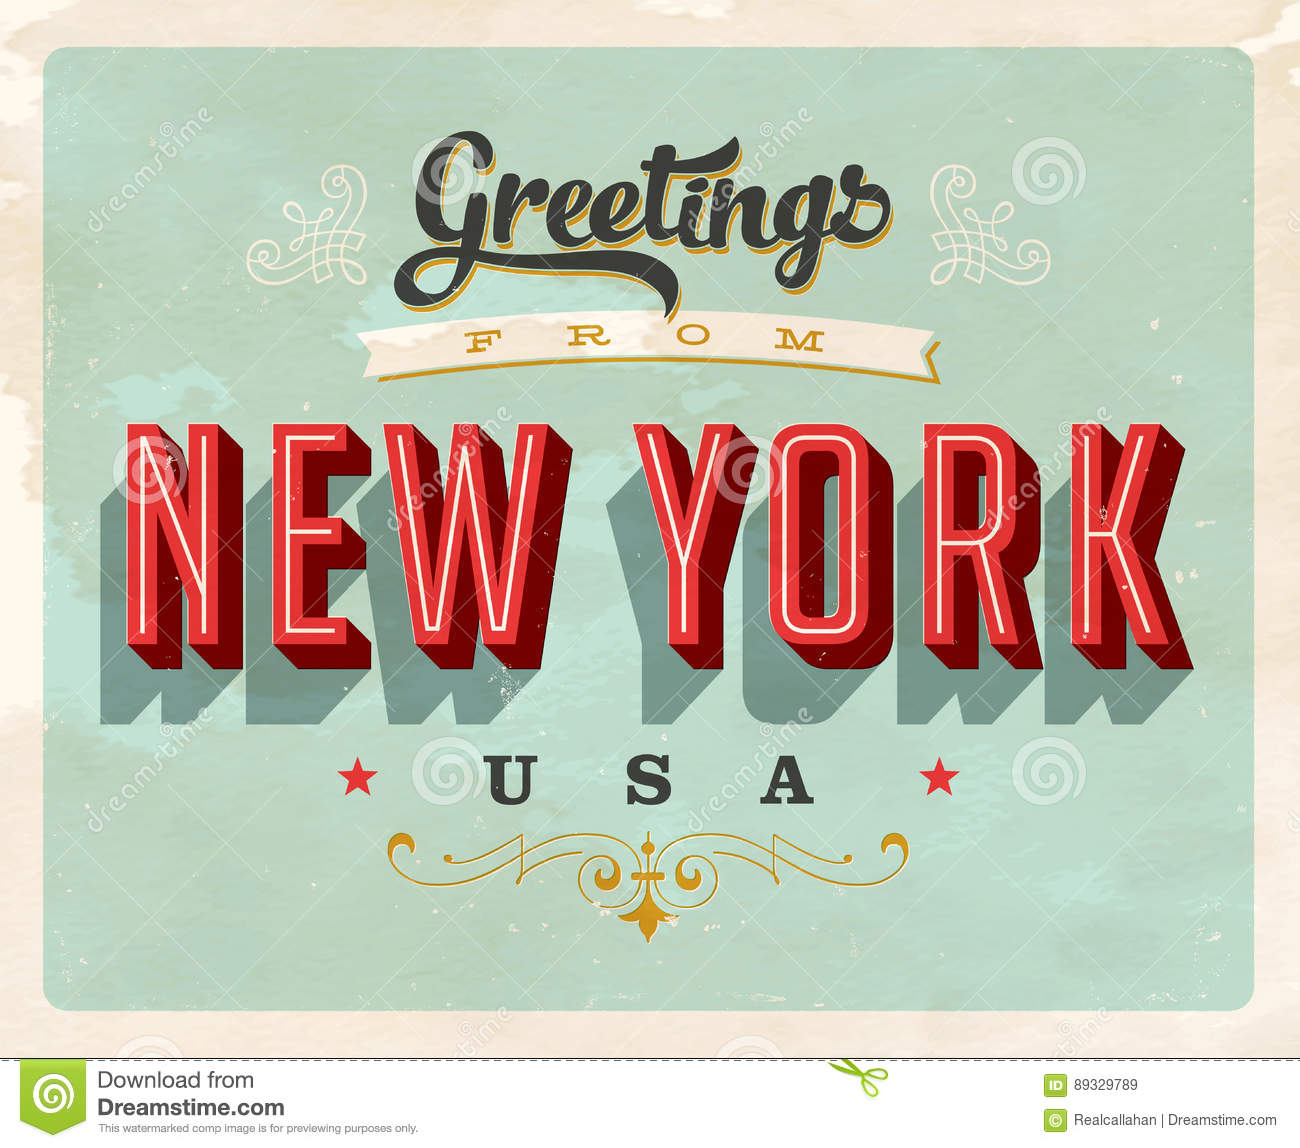 Vintage greetings from new york vacation card stock vector vintage greetings from new york vacation card kristyandbryce Images